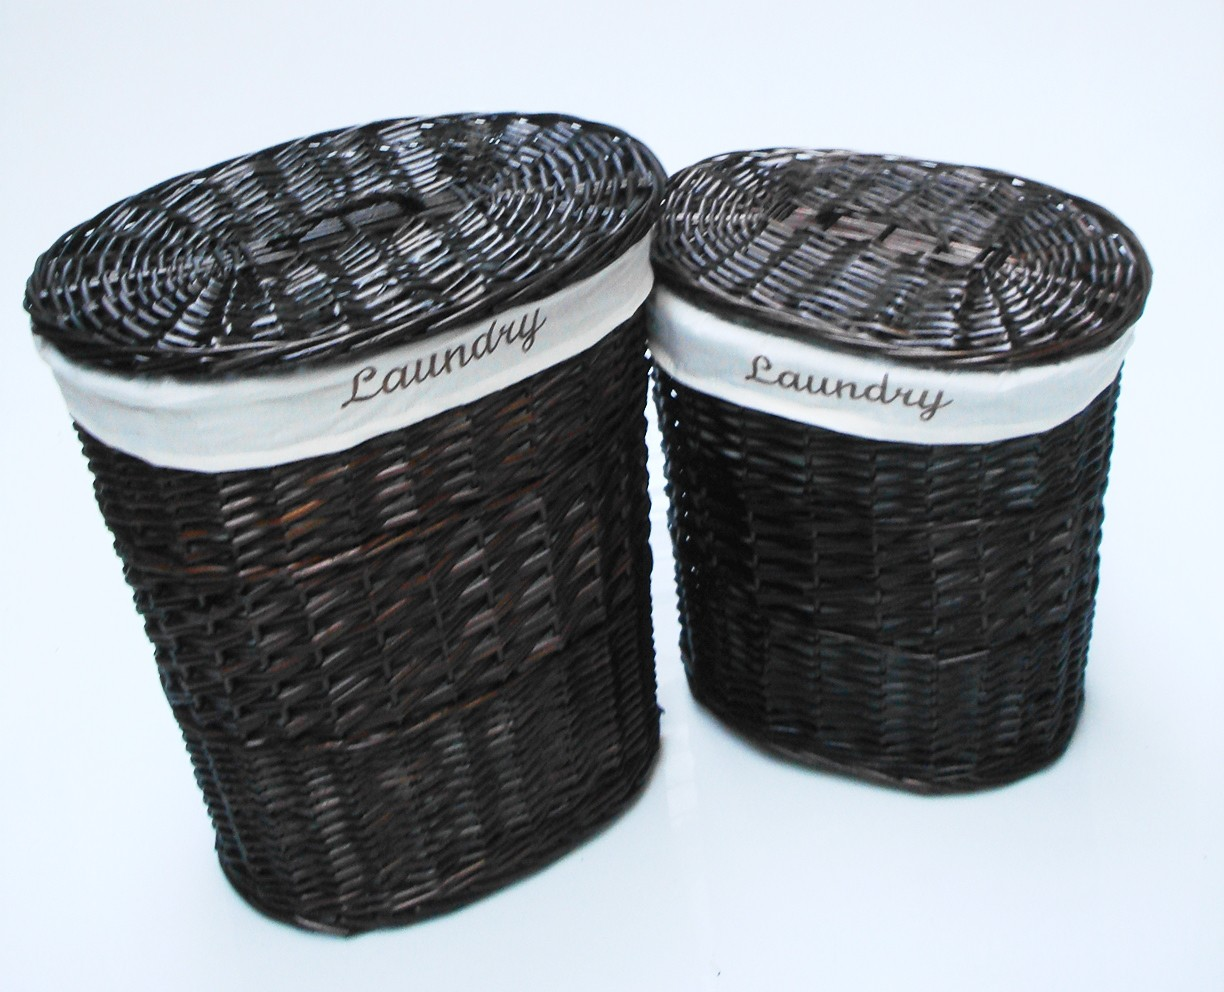 Brown white black oval wicker laundry basket with lid White wicker washing basket